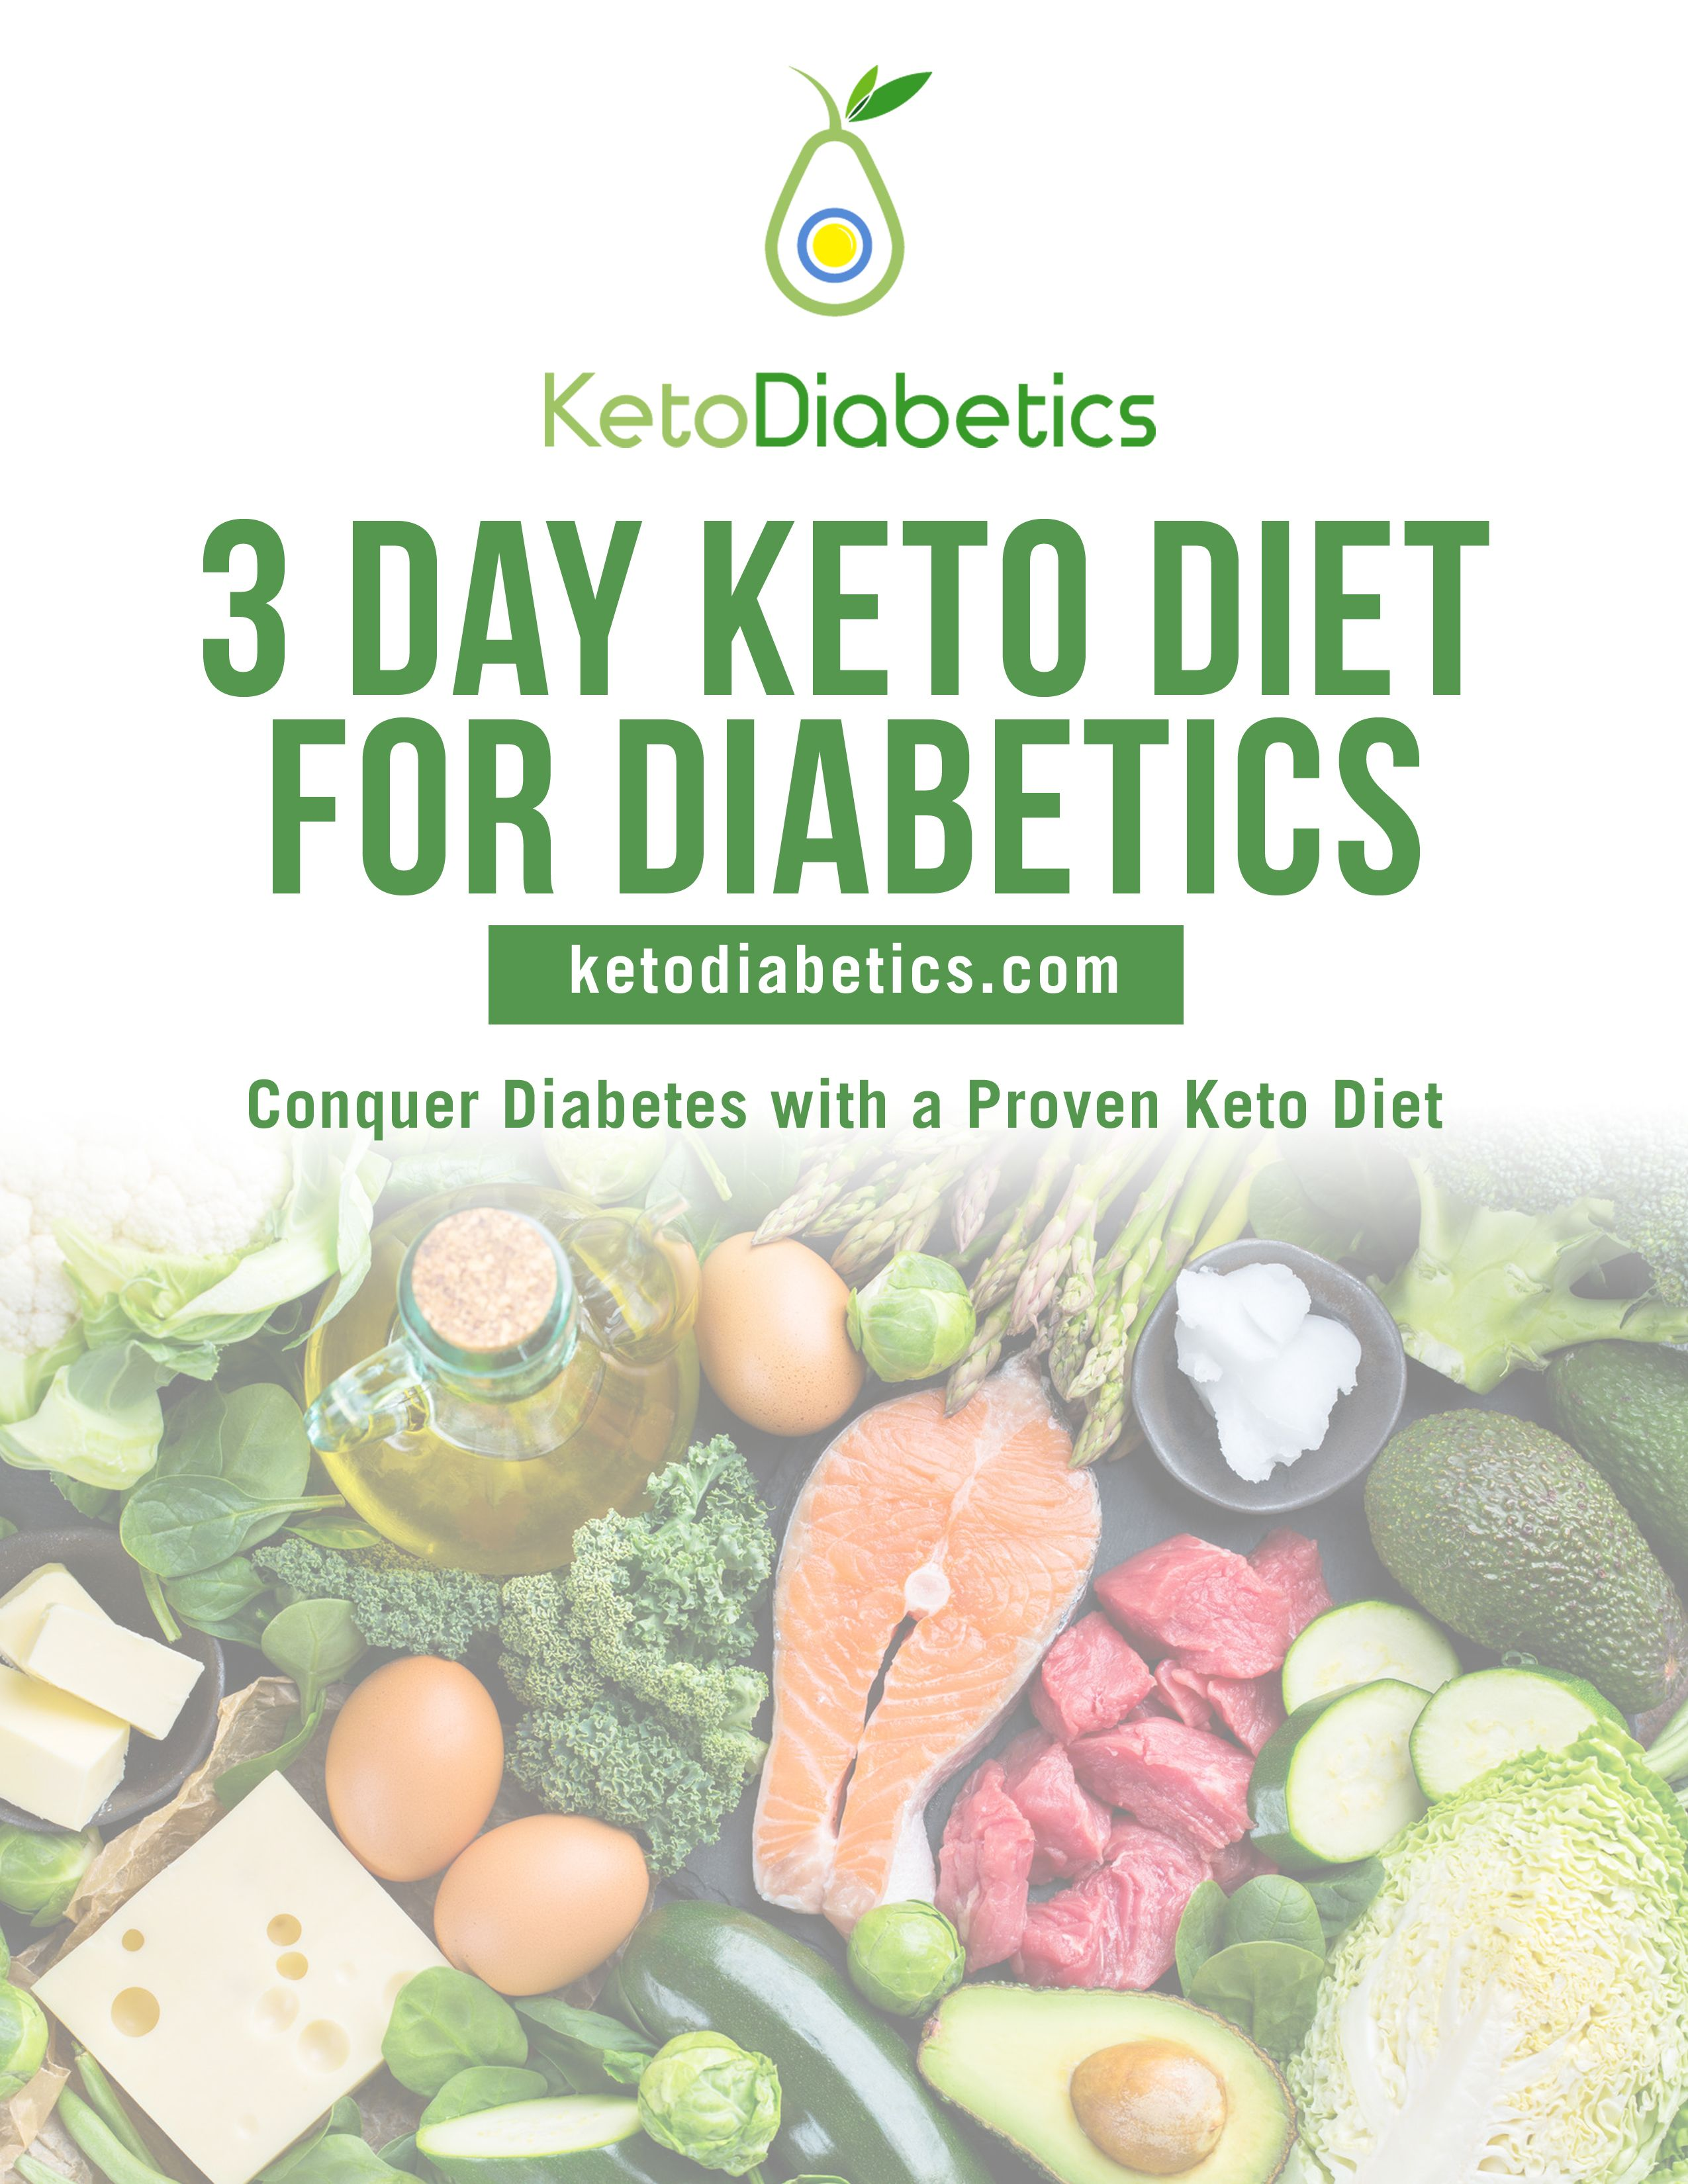 Claim Free 3 Day Keto Diet Meal Plan For Diabetics In 2020 Keto Diet Meal Plan Diabetic Meal Plan Diet Meal Plans